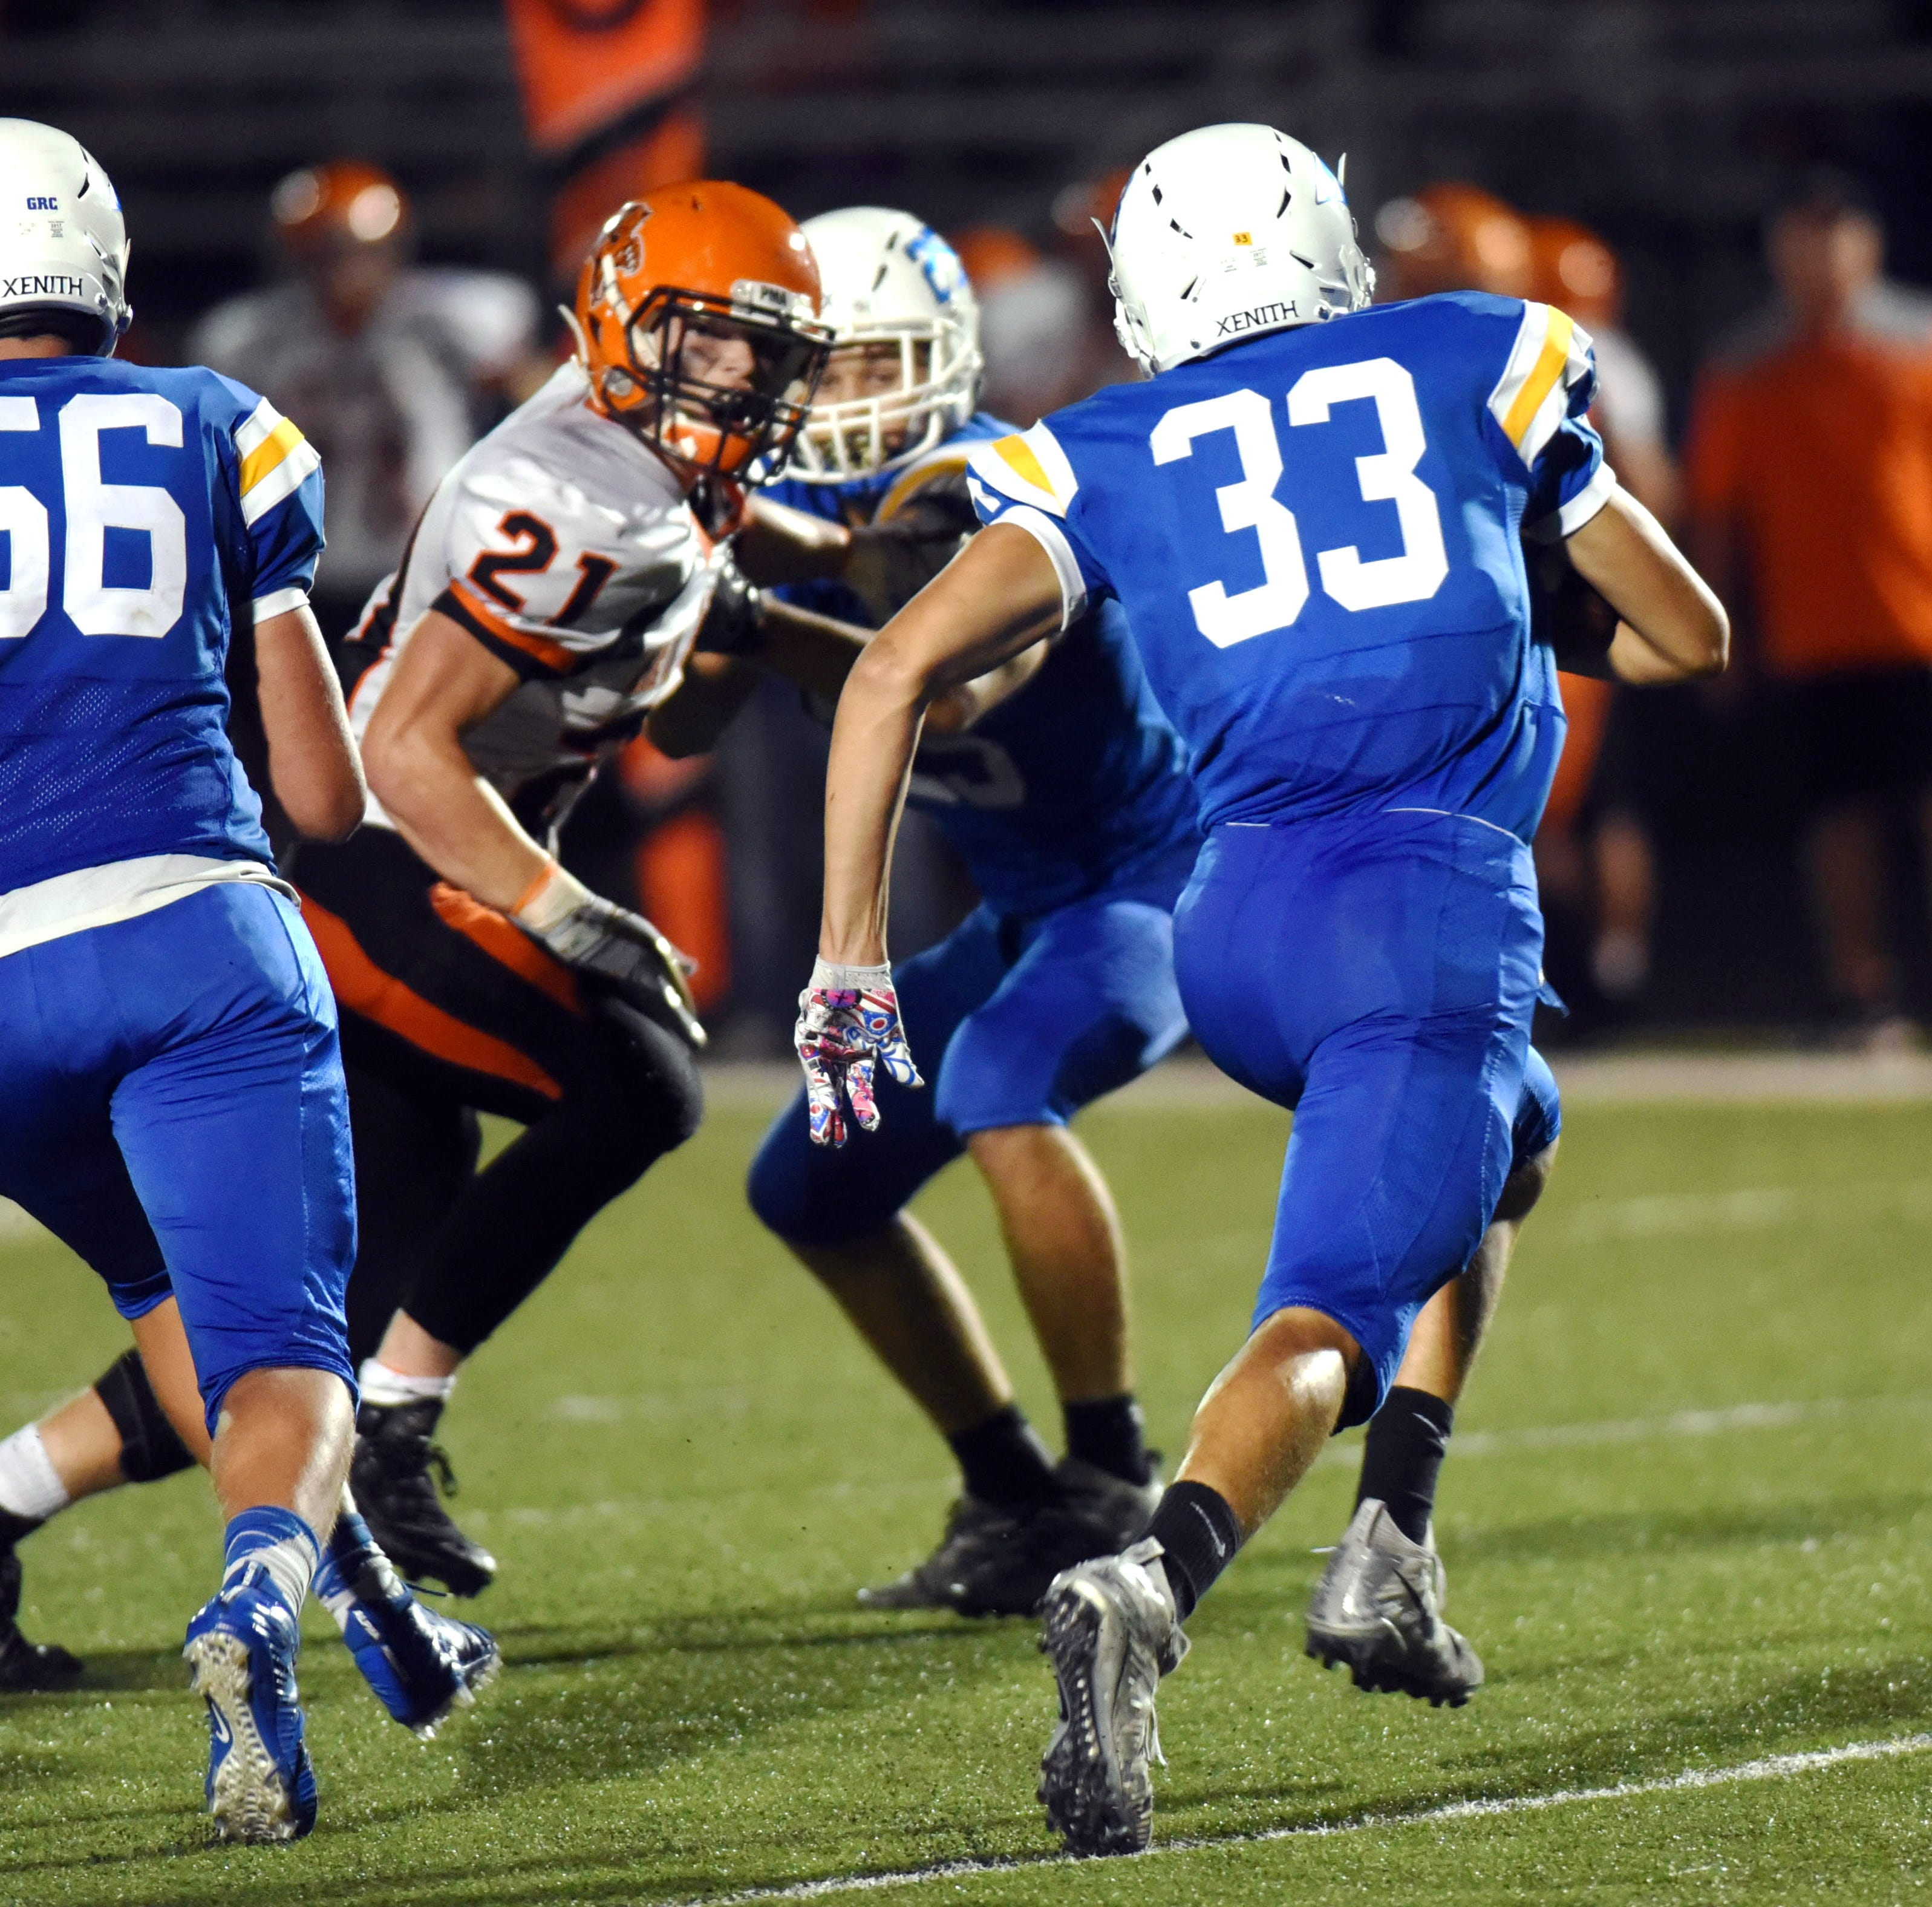 New Lexington's Christian Vance (21) tries to reach Maysville's Johnathon Brennen last season. Vance is among several starters returning for first-year coach Bill Franks.